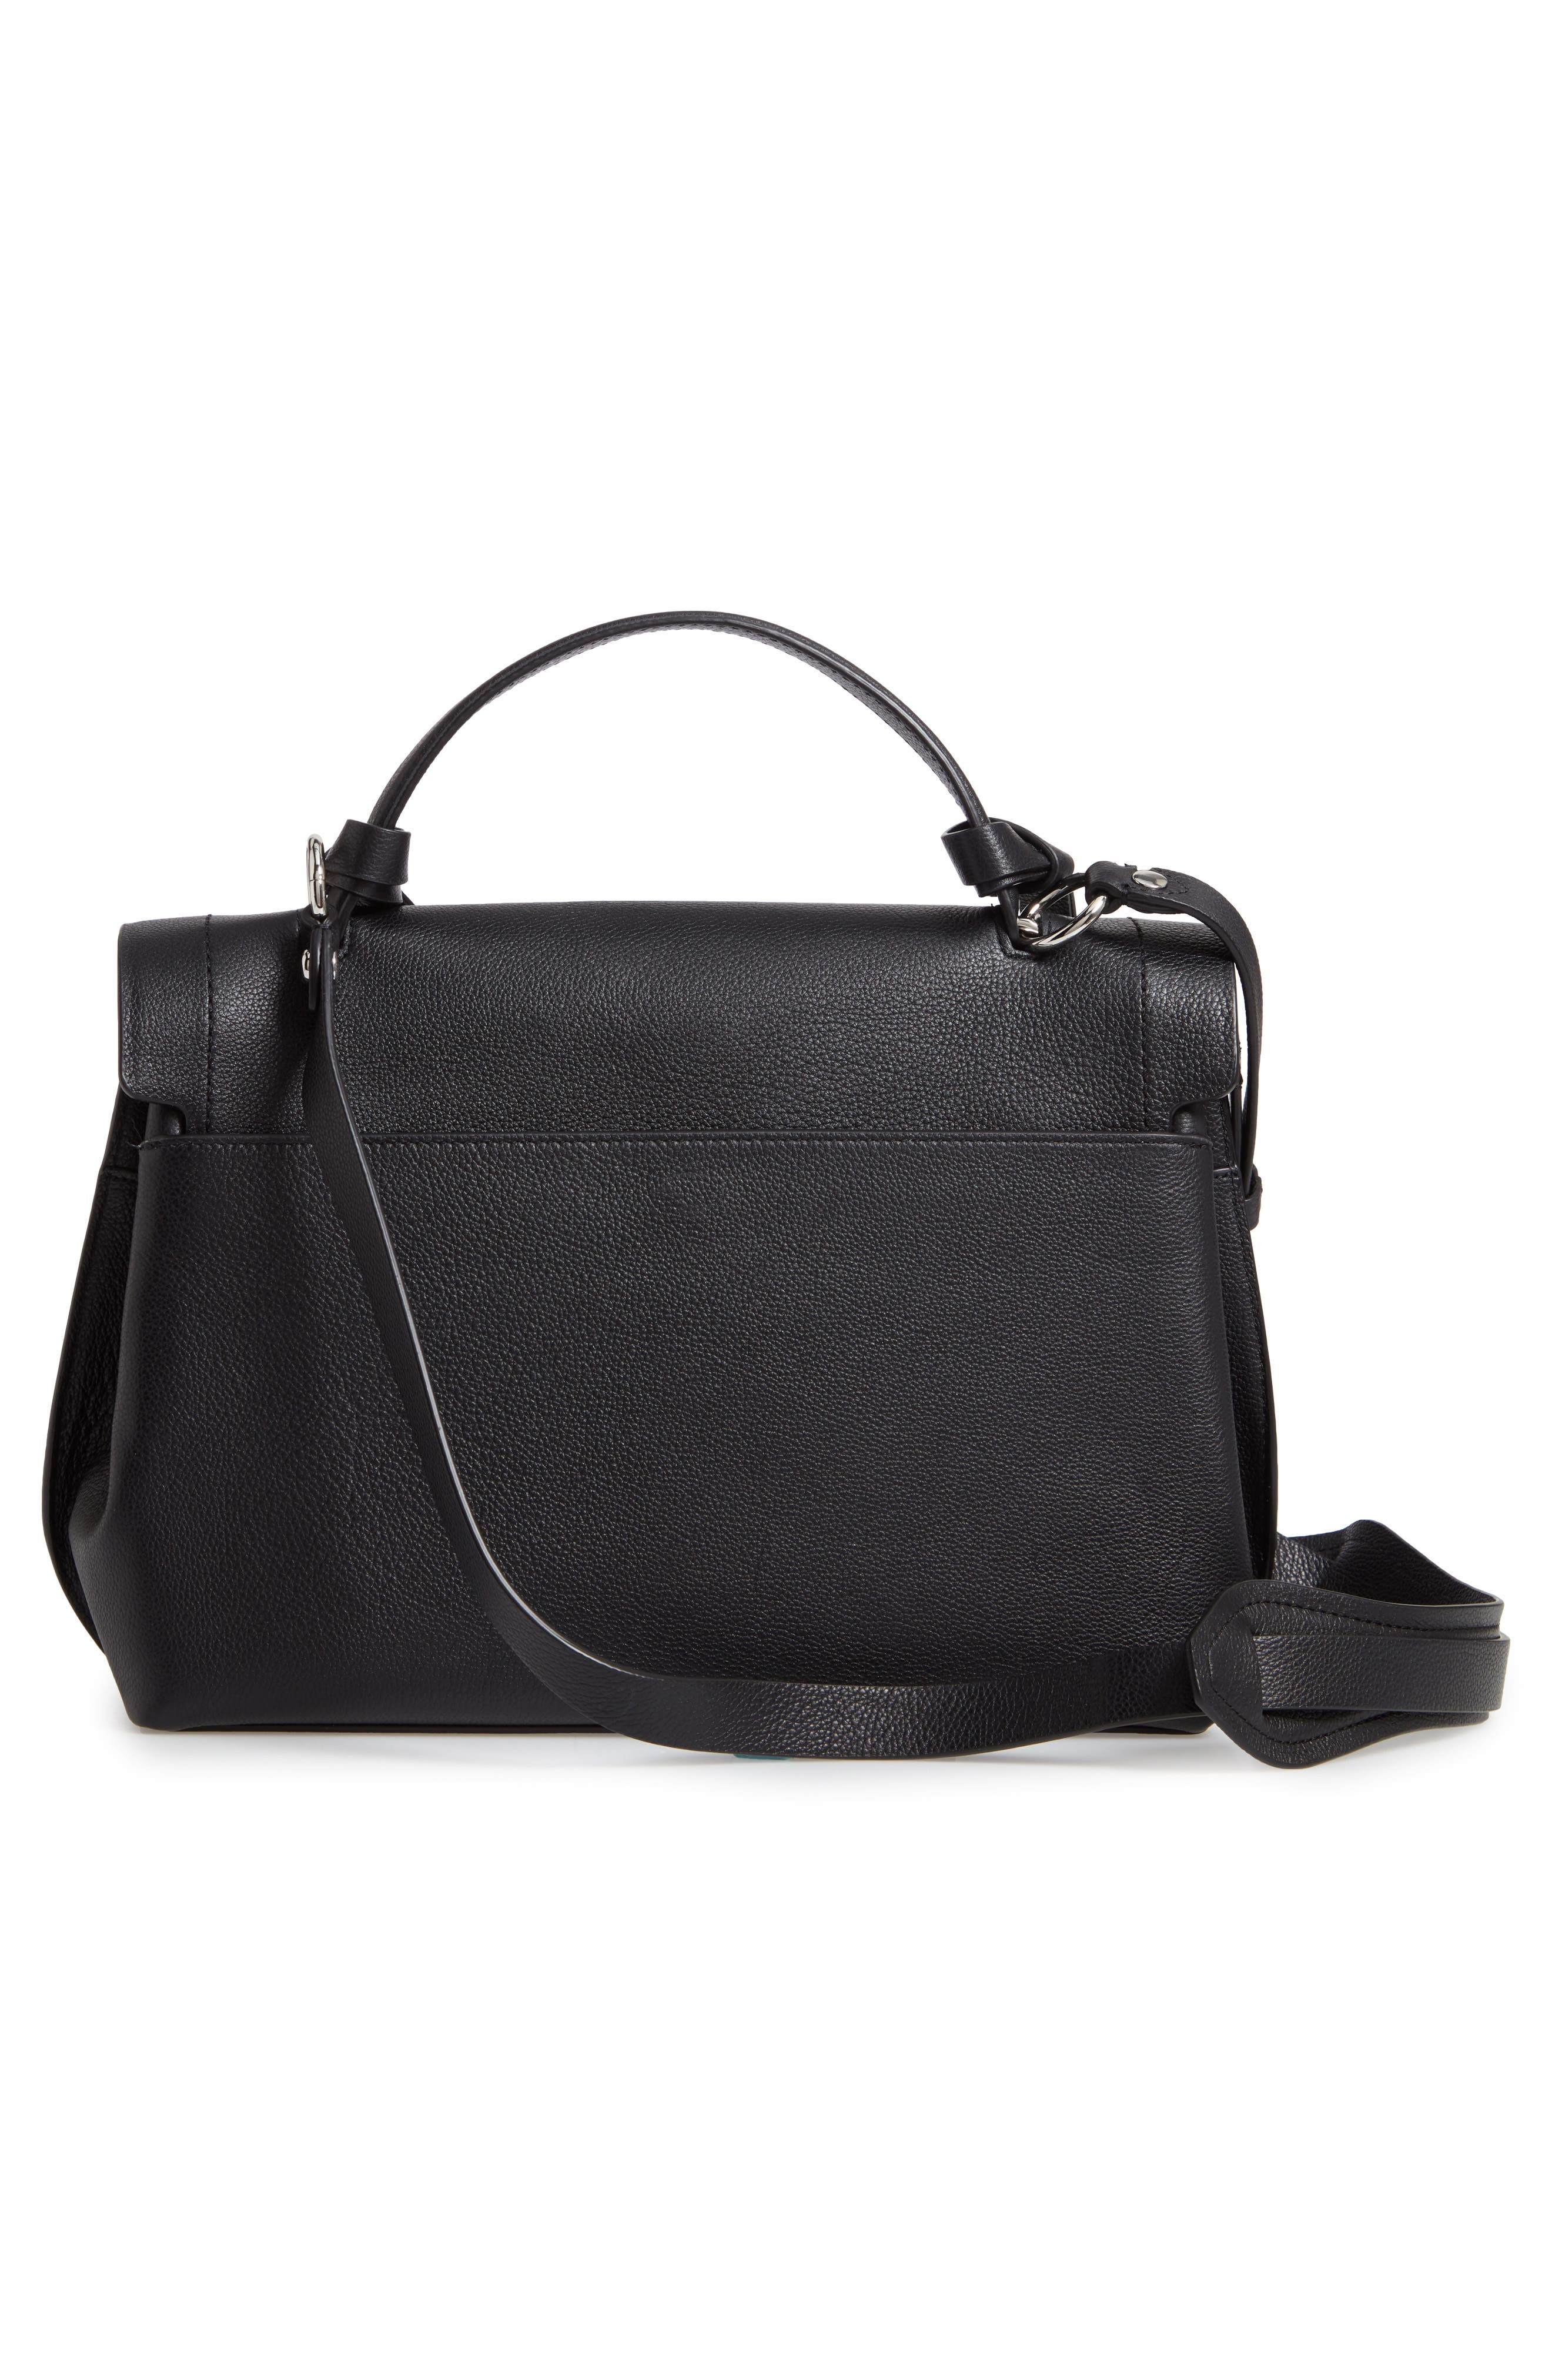 REBECCA MINKOFF, Stella Leather Satchel, Alternate thumbnail 4, color, 001